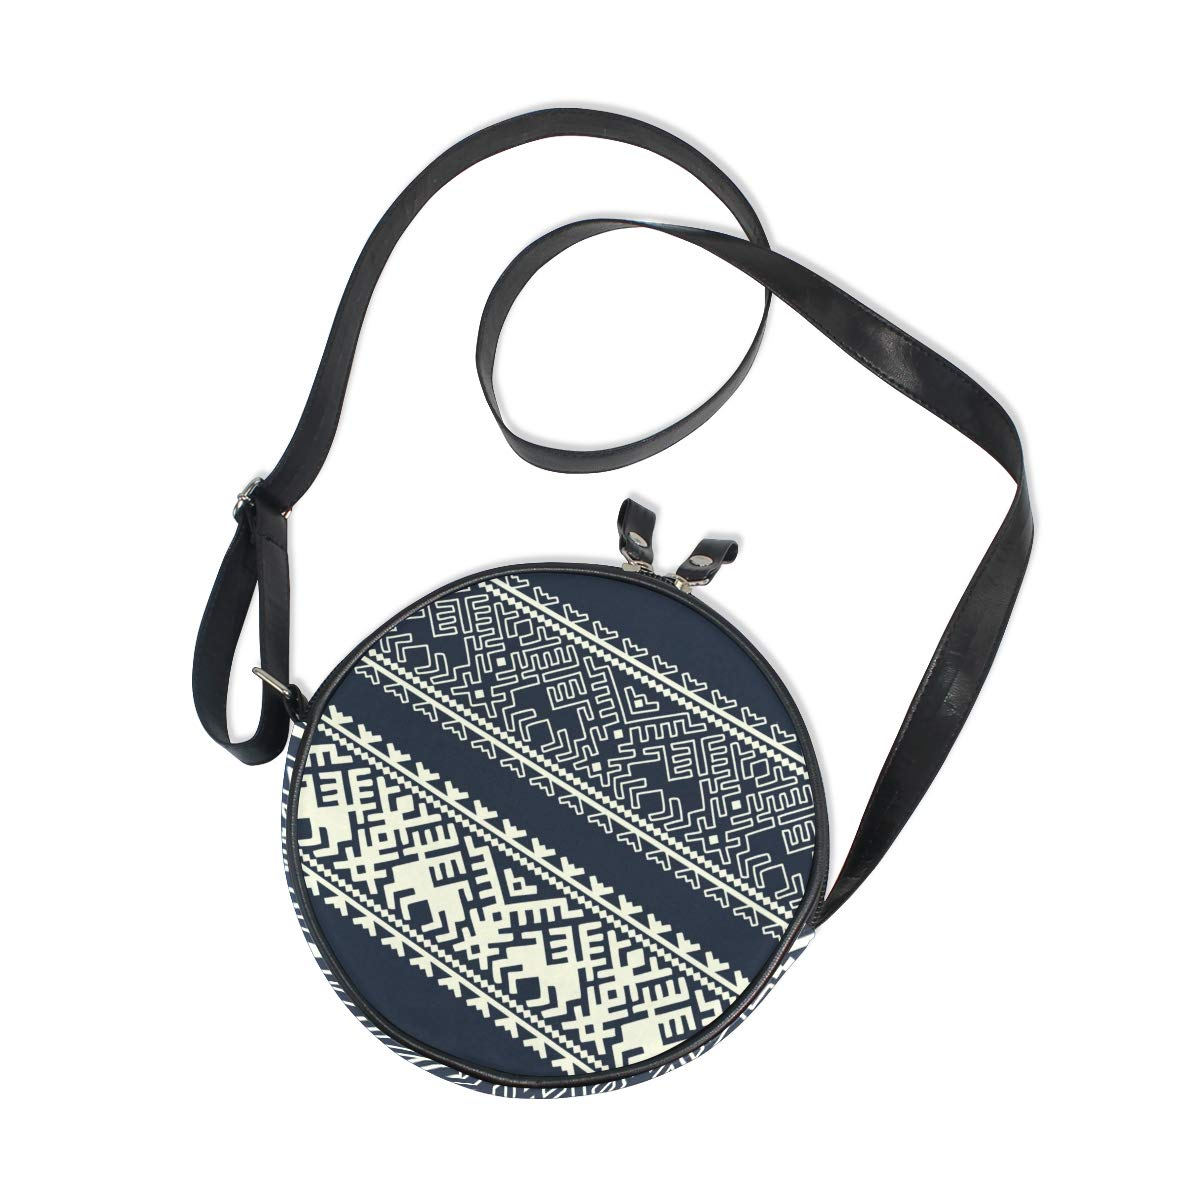 Pattern On Fabric Texture For Background Super Cute Design Small Canvas Messenger Bags Shoulder Bag Round Crossbody Bags Purses for Little Girls Gifts